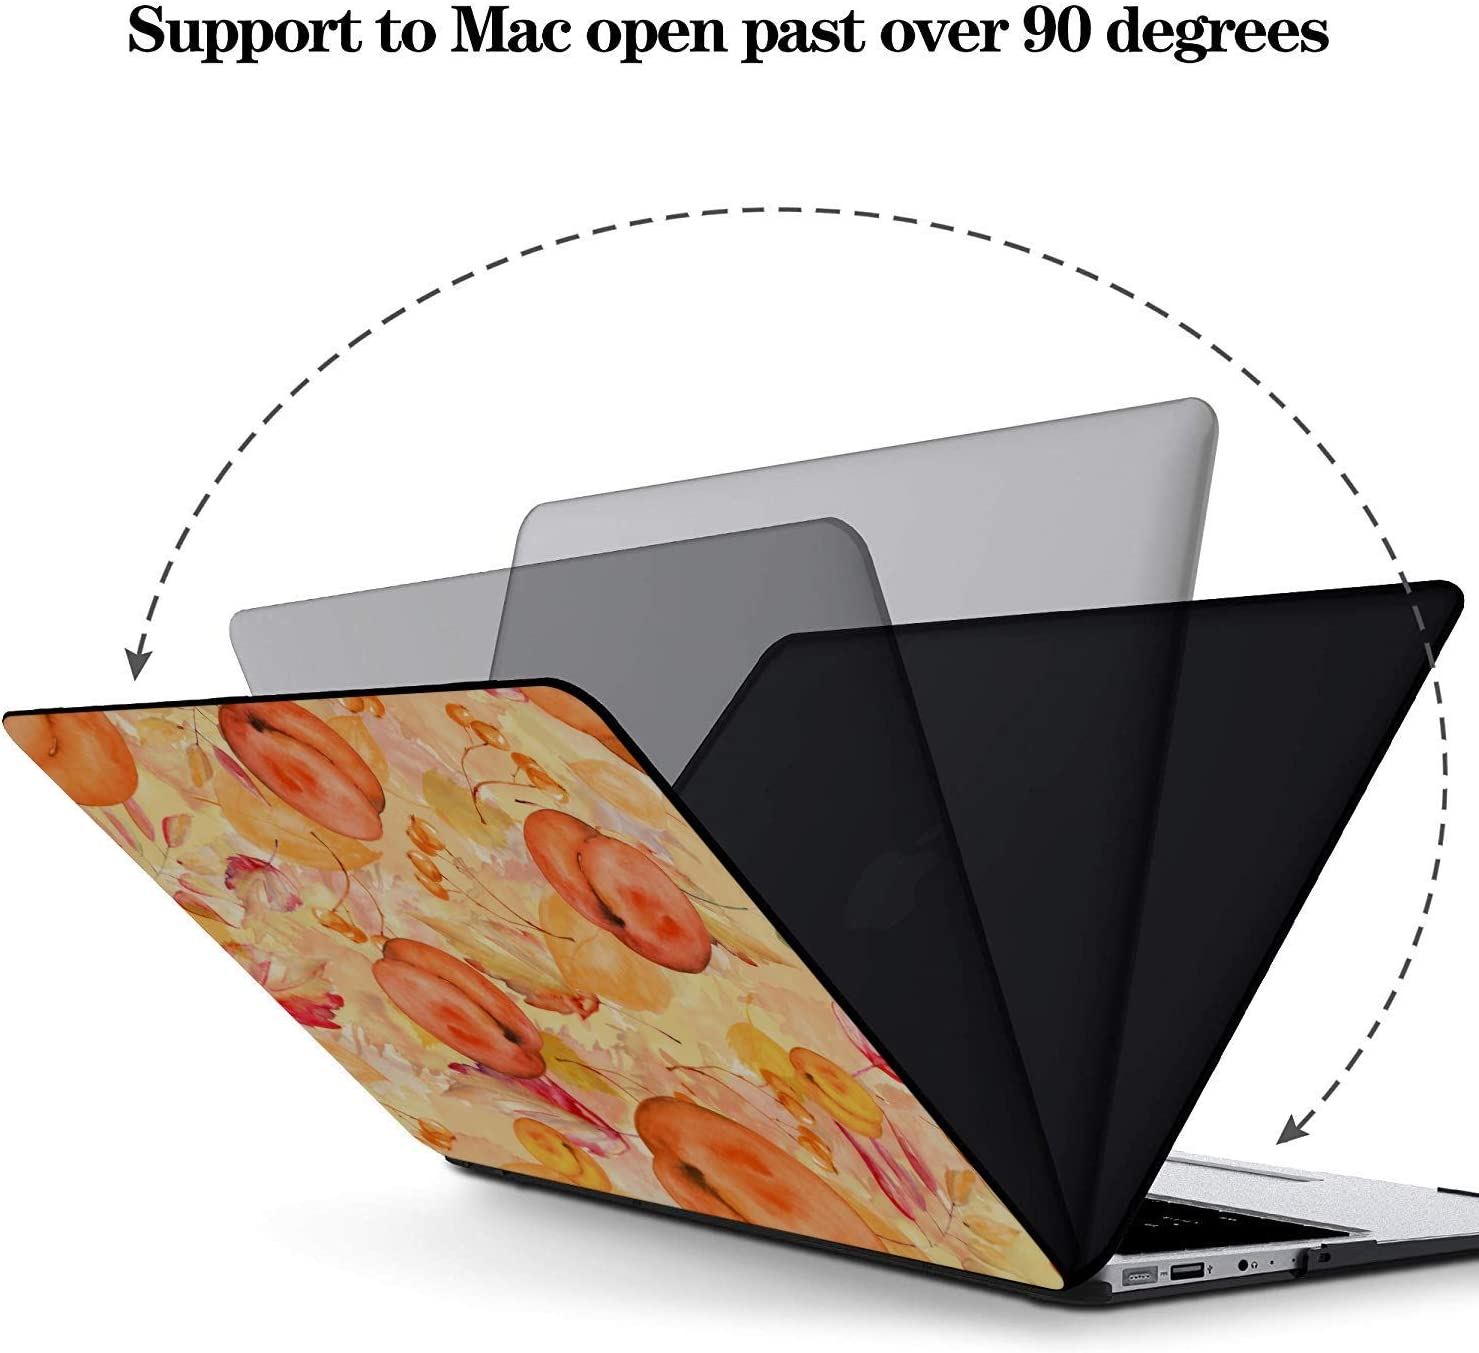 MacBook 15 Case Summer Sweet Fruit Yellow Peach Canned Plastic Hard Shell Compatible Mac Air 11 Pro 13 15 MacBook Pro 2018 Accessories Protection for MacBook 2016-2019 Version